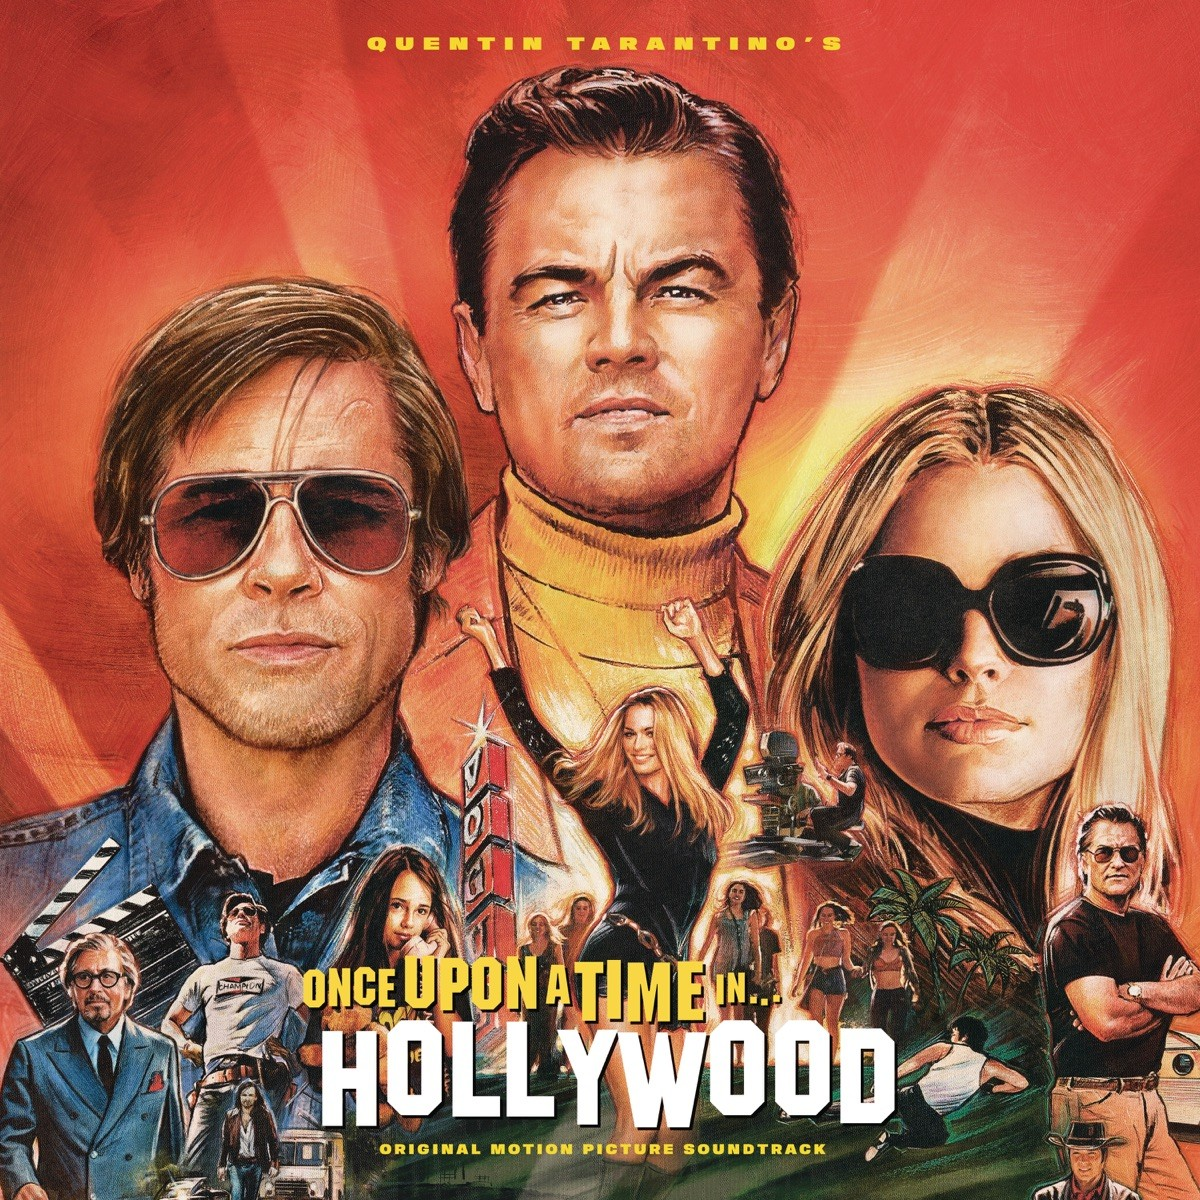 Quentin Tarantino's Once Upon a Time in Hollywood (Original Motion Picture Soundtrack) VINYL - 19075981971